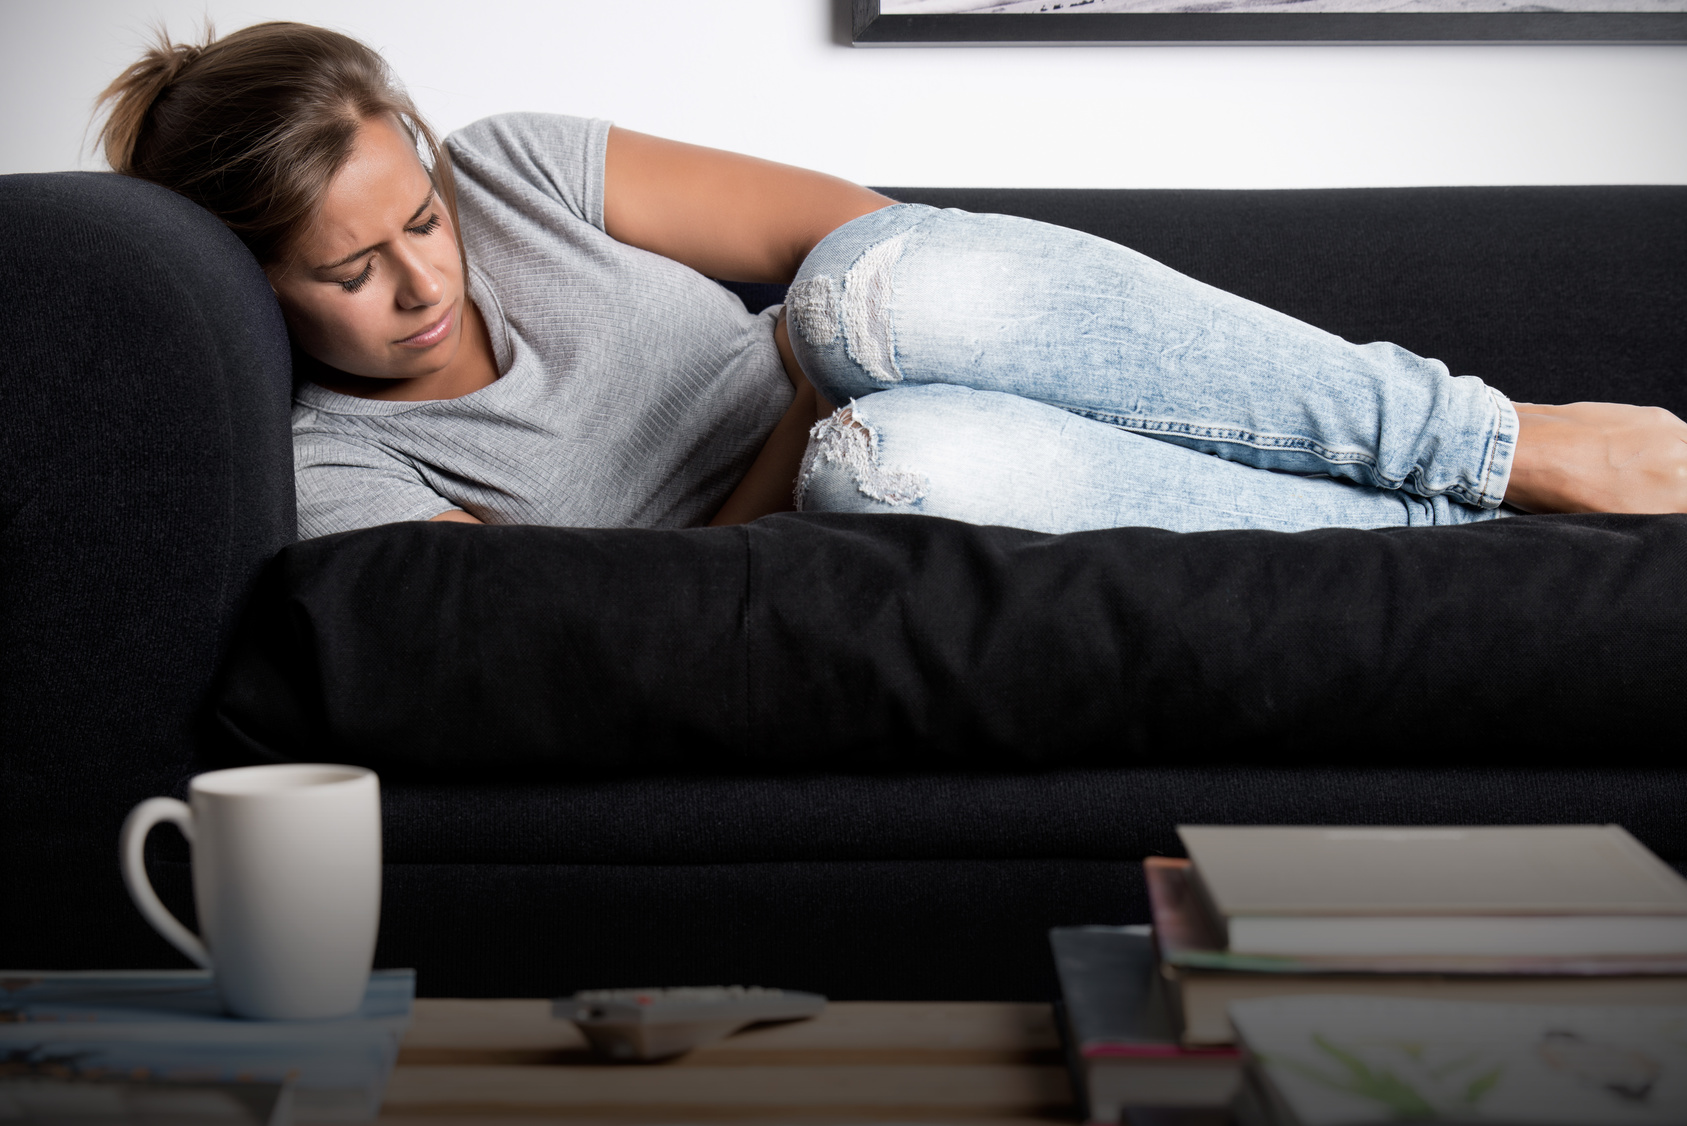 fibroids | CU Medicine OB-GYN East Denver (Rocky Mountain) | woman in pain on couch